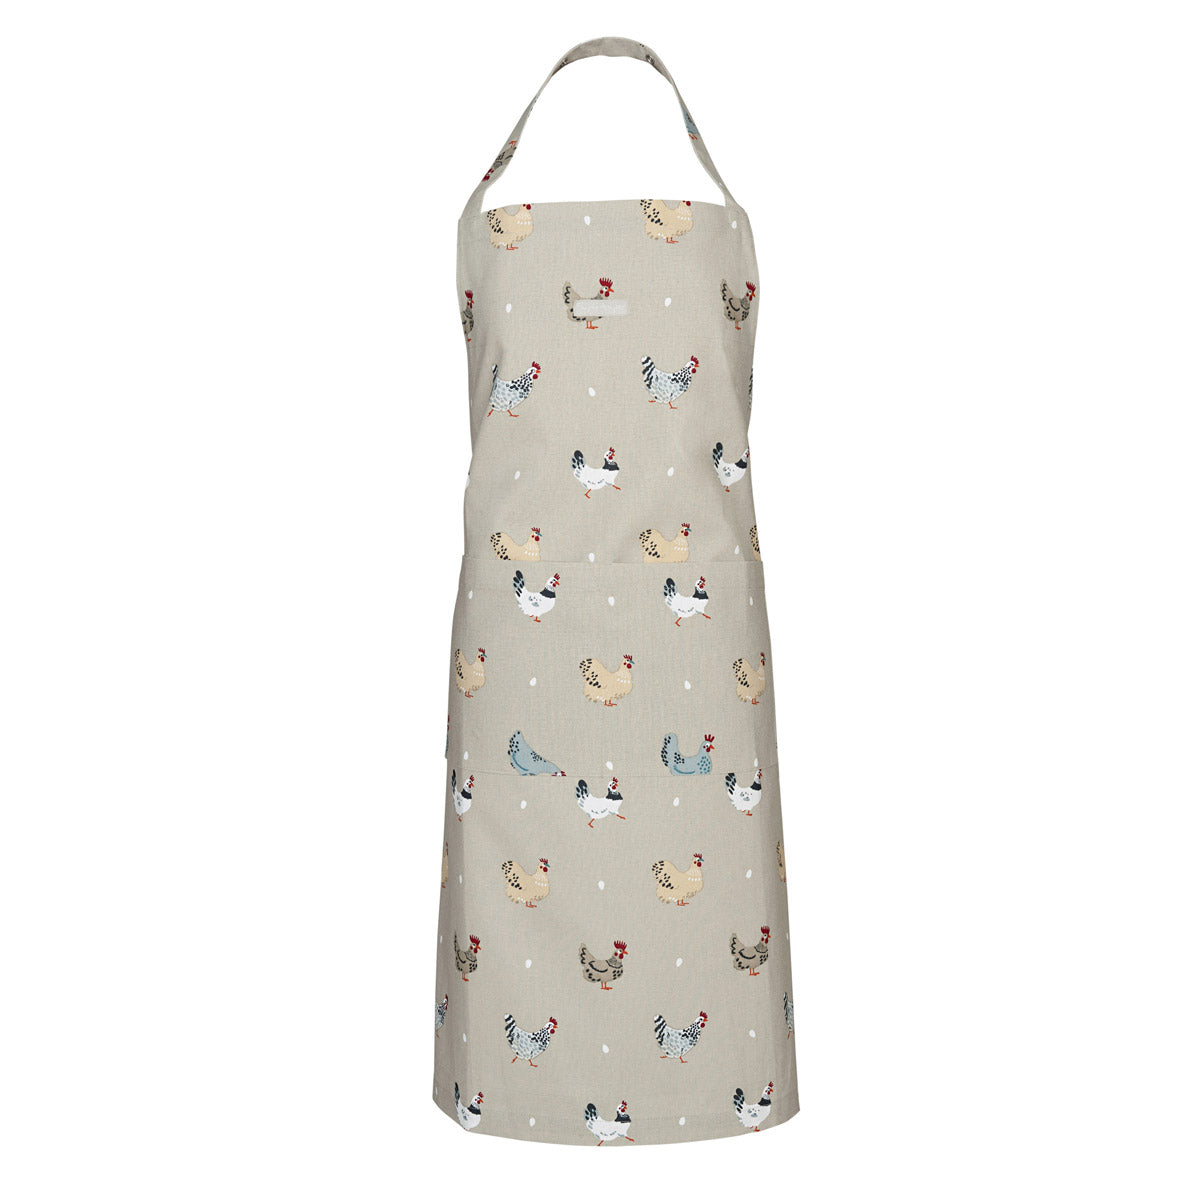 Lay A Little Egg Hen Adult Apron